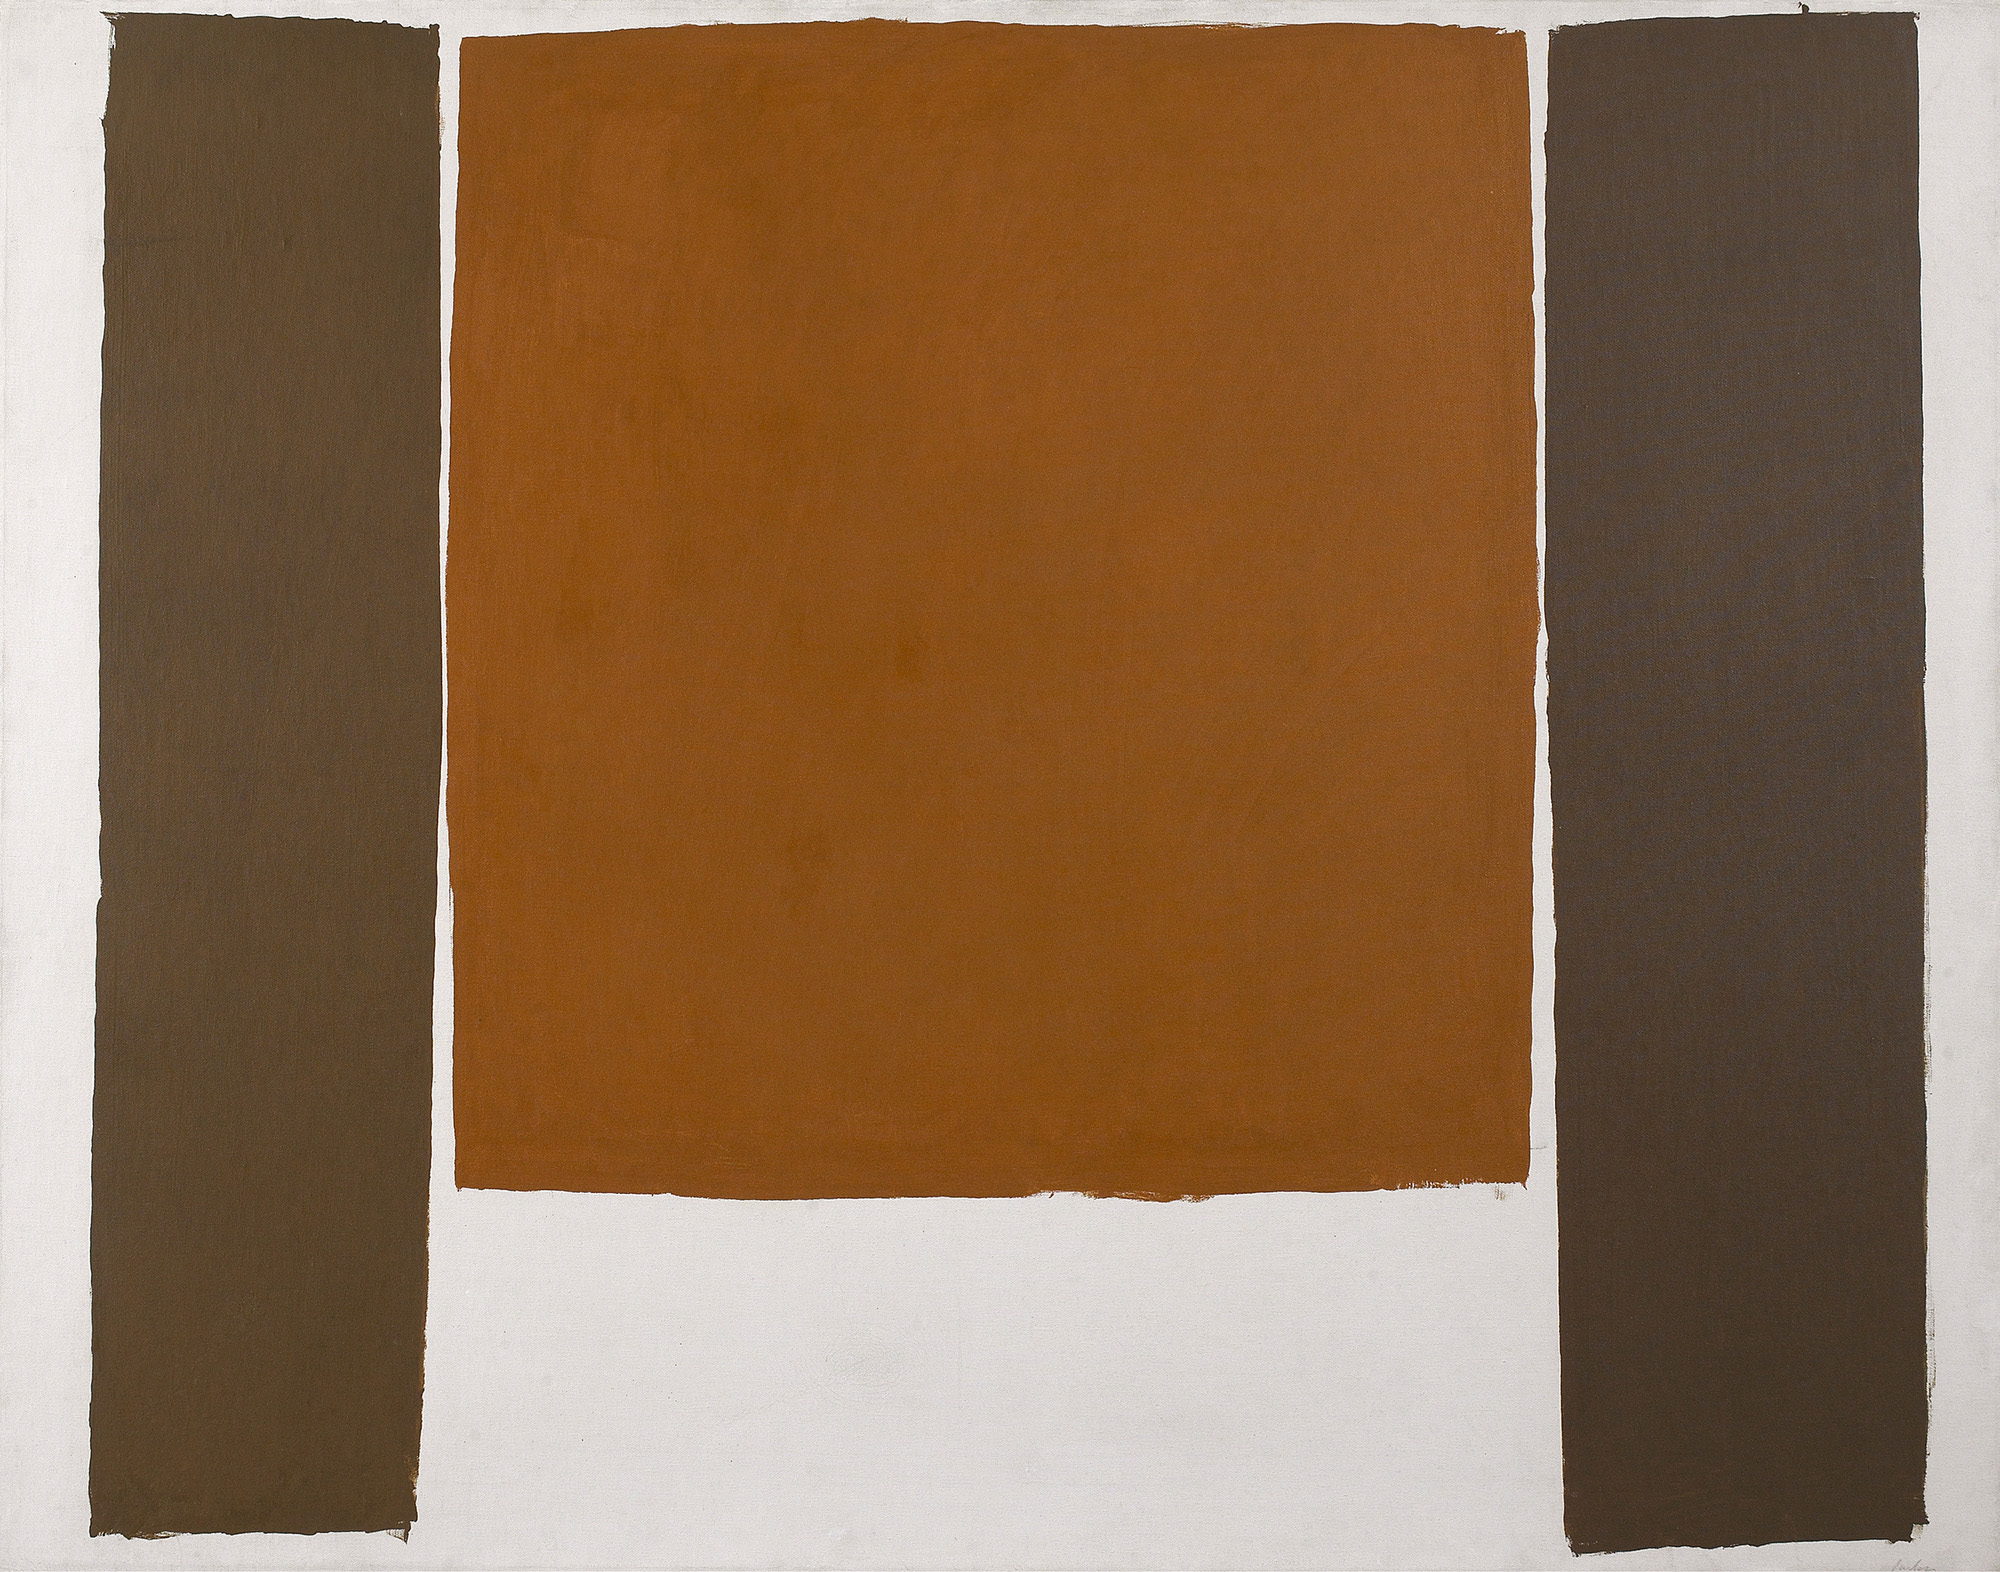 Untitled, 1963  , acrylic on canvas, 41 x 53 inches